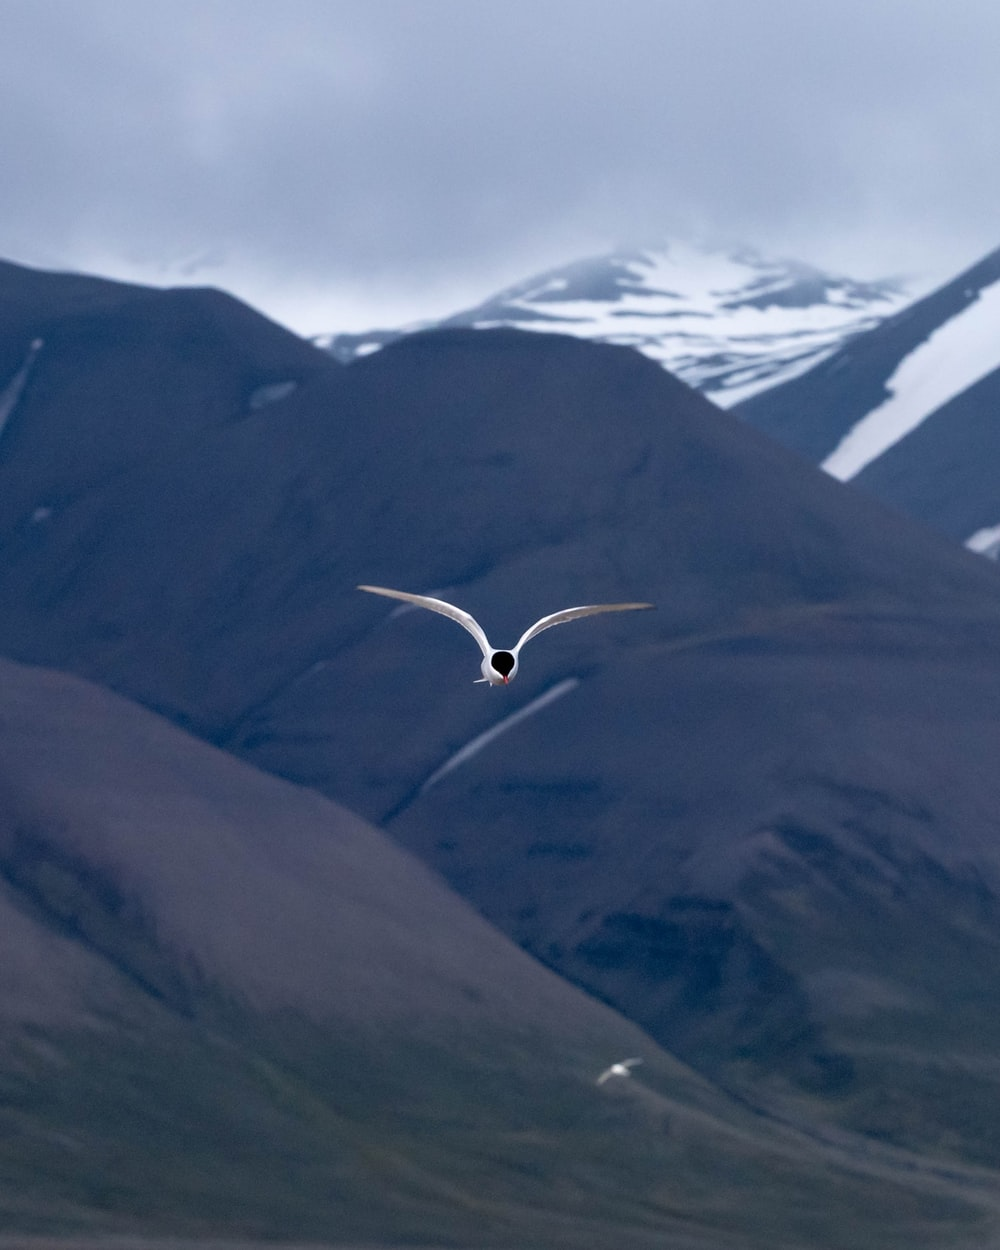 time lapse photography of bird in flight over mountains